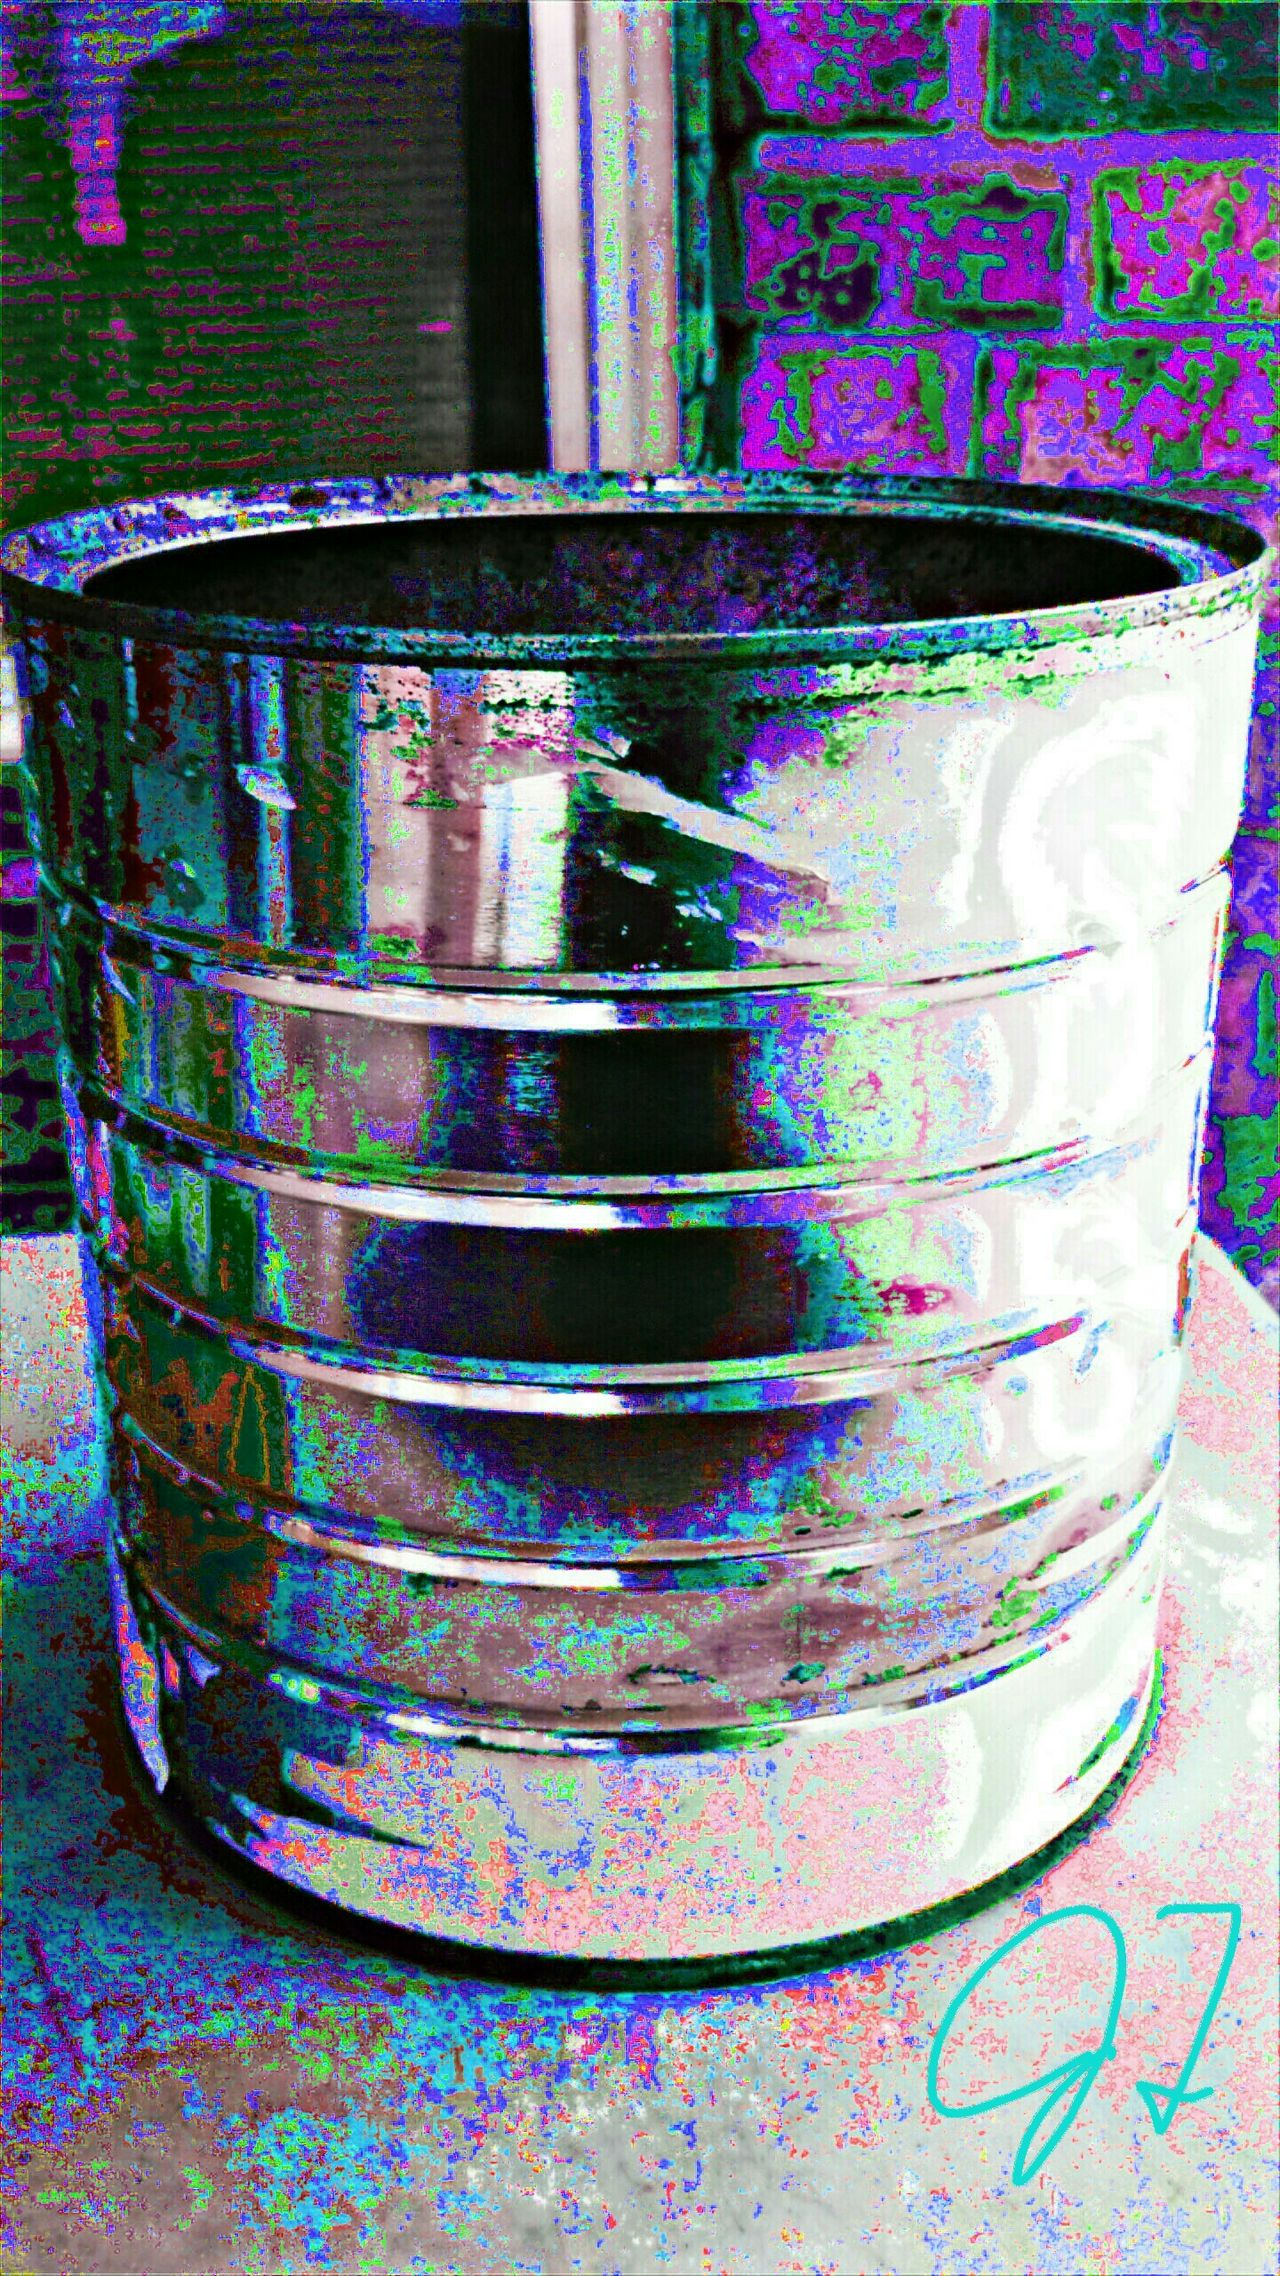 """Painted Can"" The Innovator The Innovator Colorful Color Colors ManyColors Multicolored Multi Colored Art Photography Artphotography Pivotal Ideas Effect The ınnovator Lighting Abstract Surreal Hew Innovative Colour Of Life Electronic Art Computer Art Computerarts Computer Computer Arts Computer Artist Fine Art Photography"